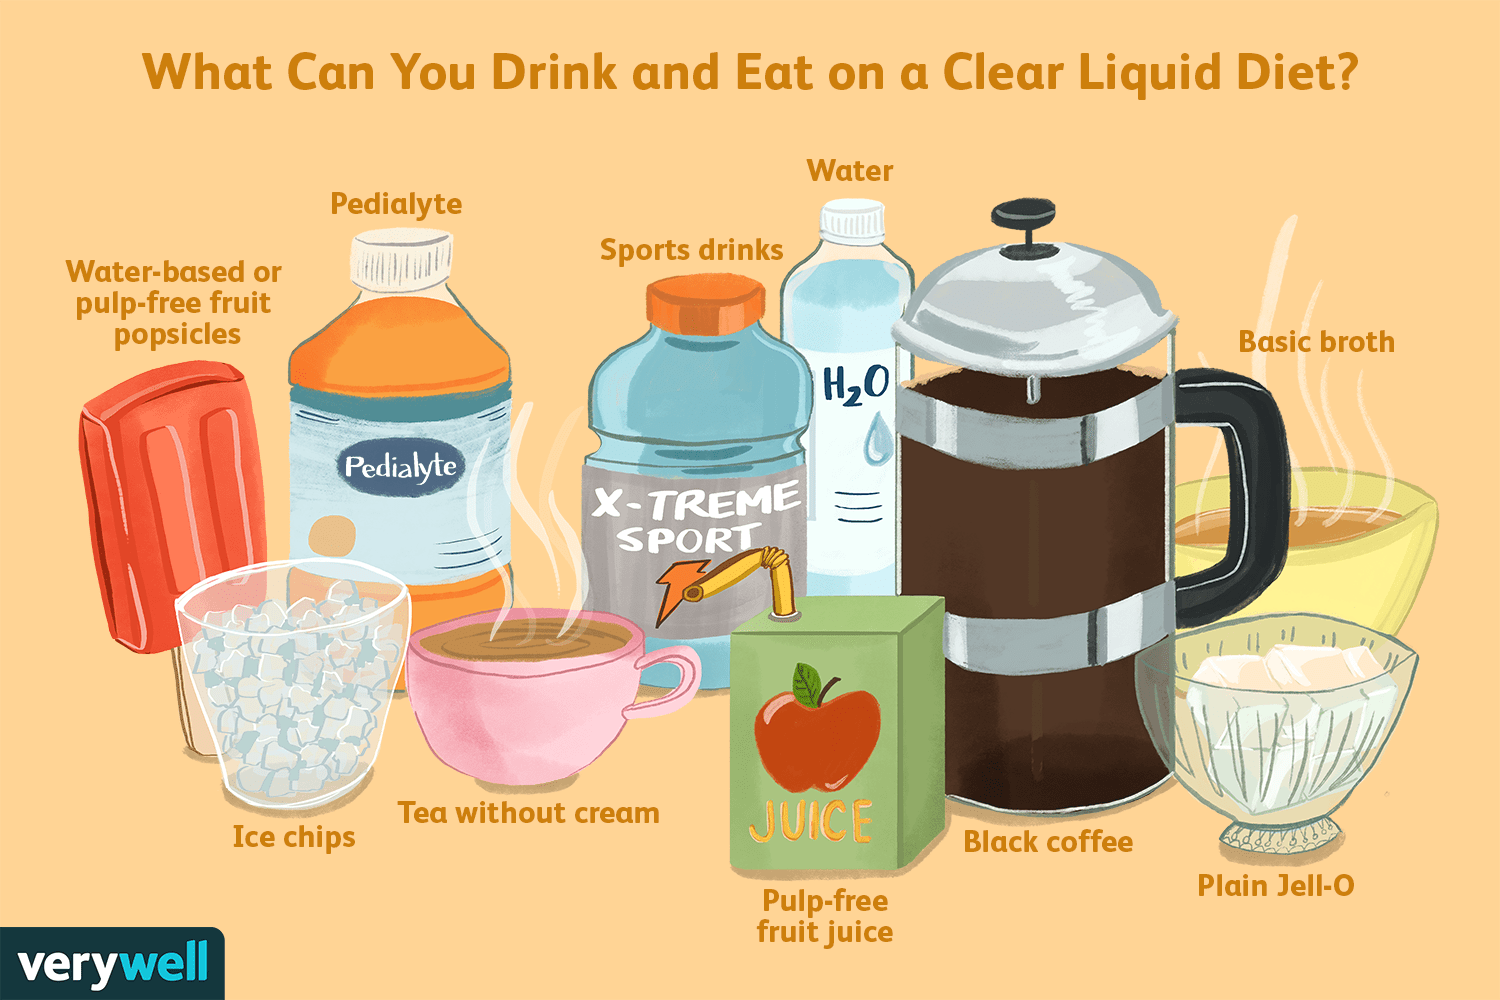 clear liquid diet full liquid diet gi soft